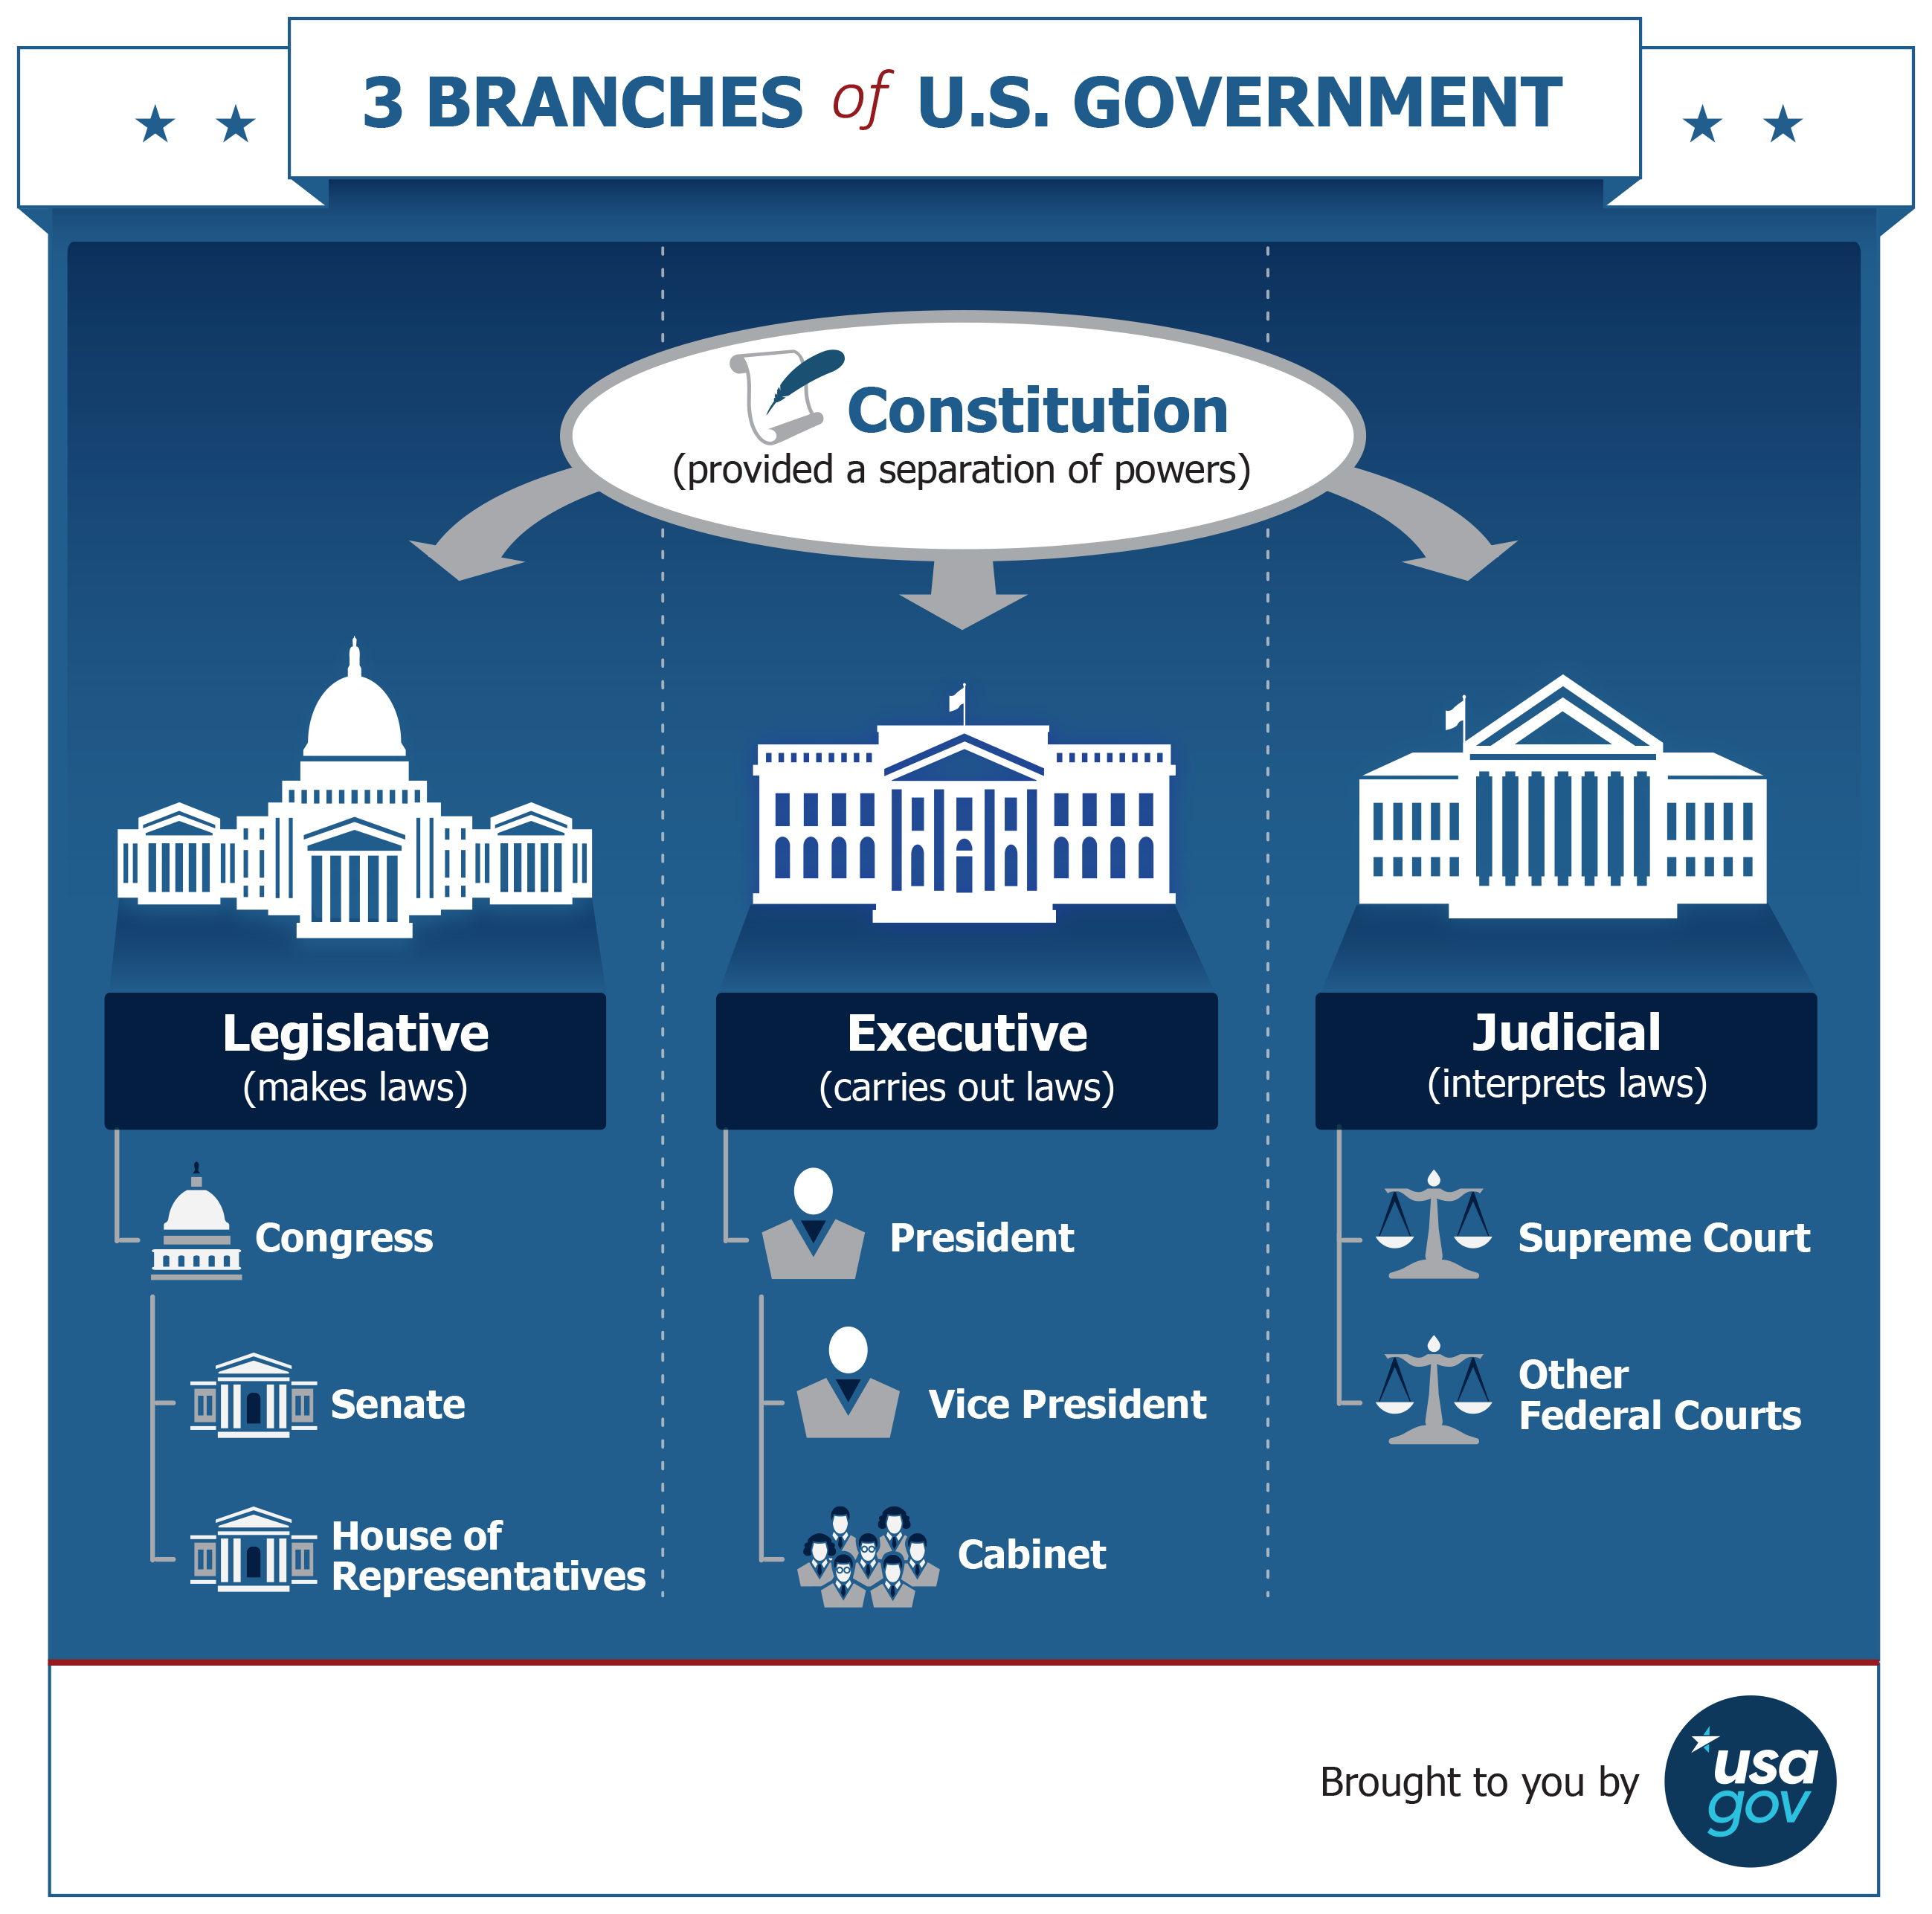 branches of the u.s. government | usagov  usa.gov